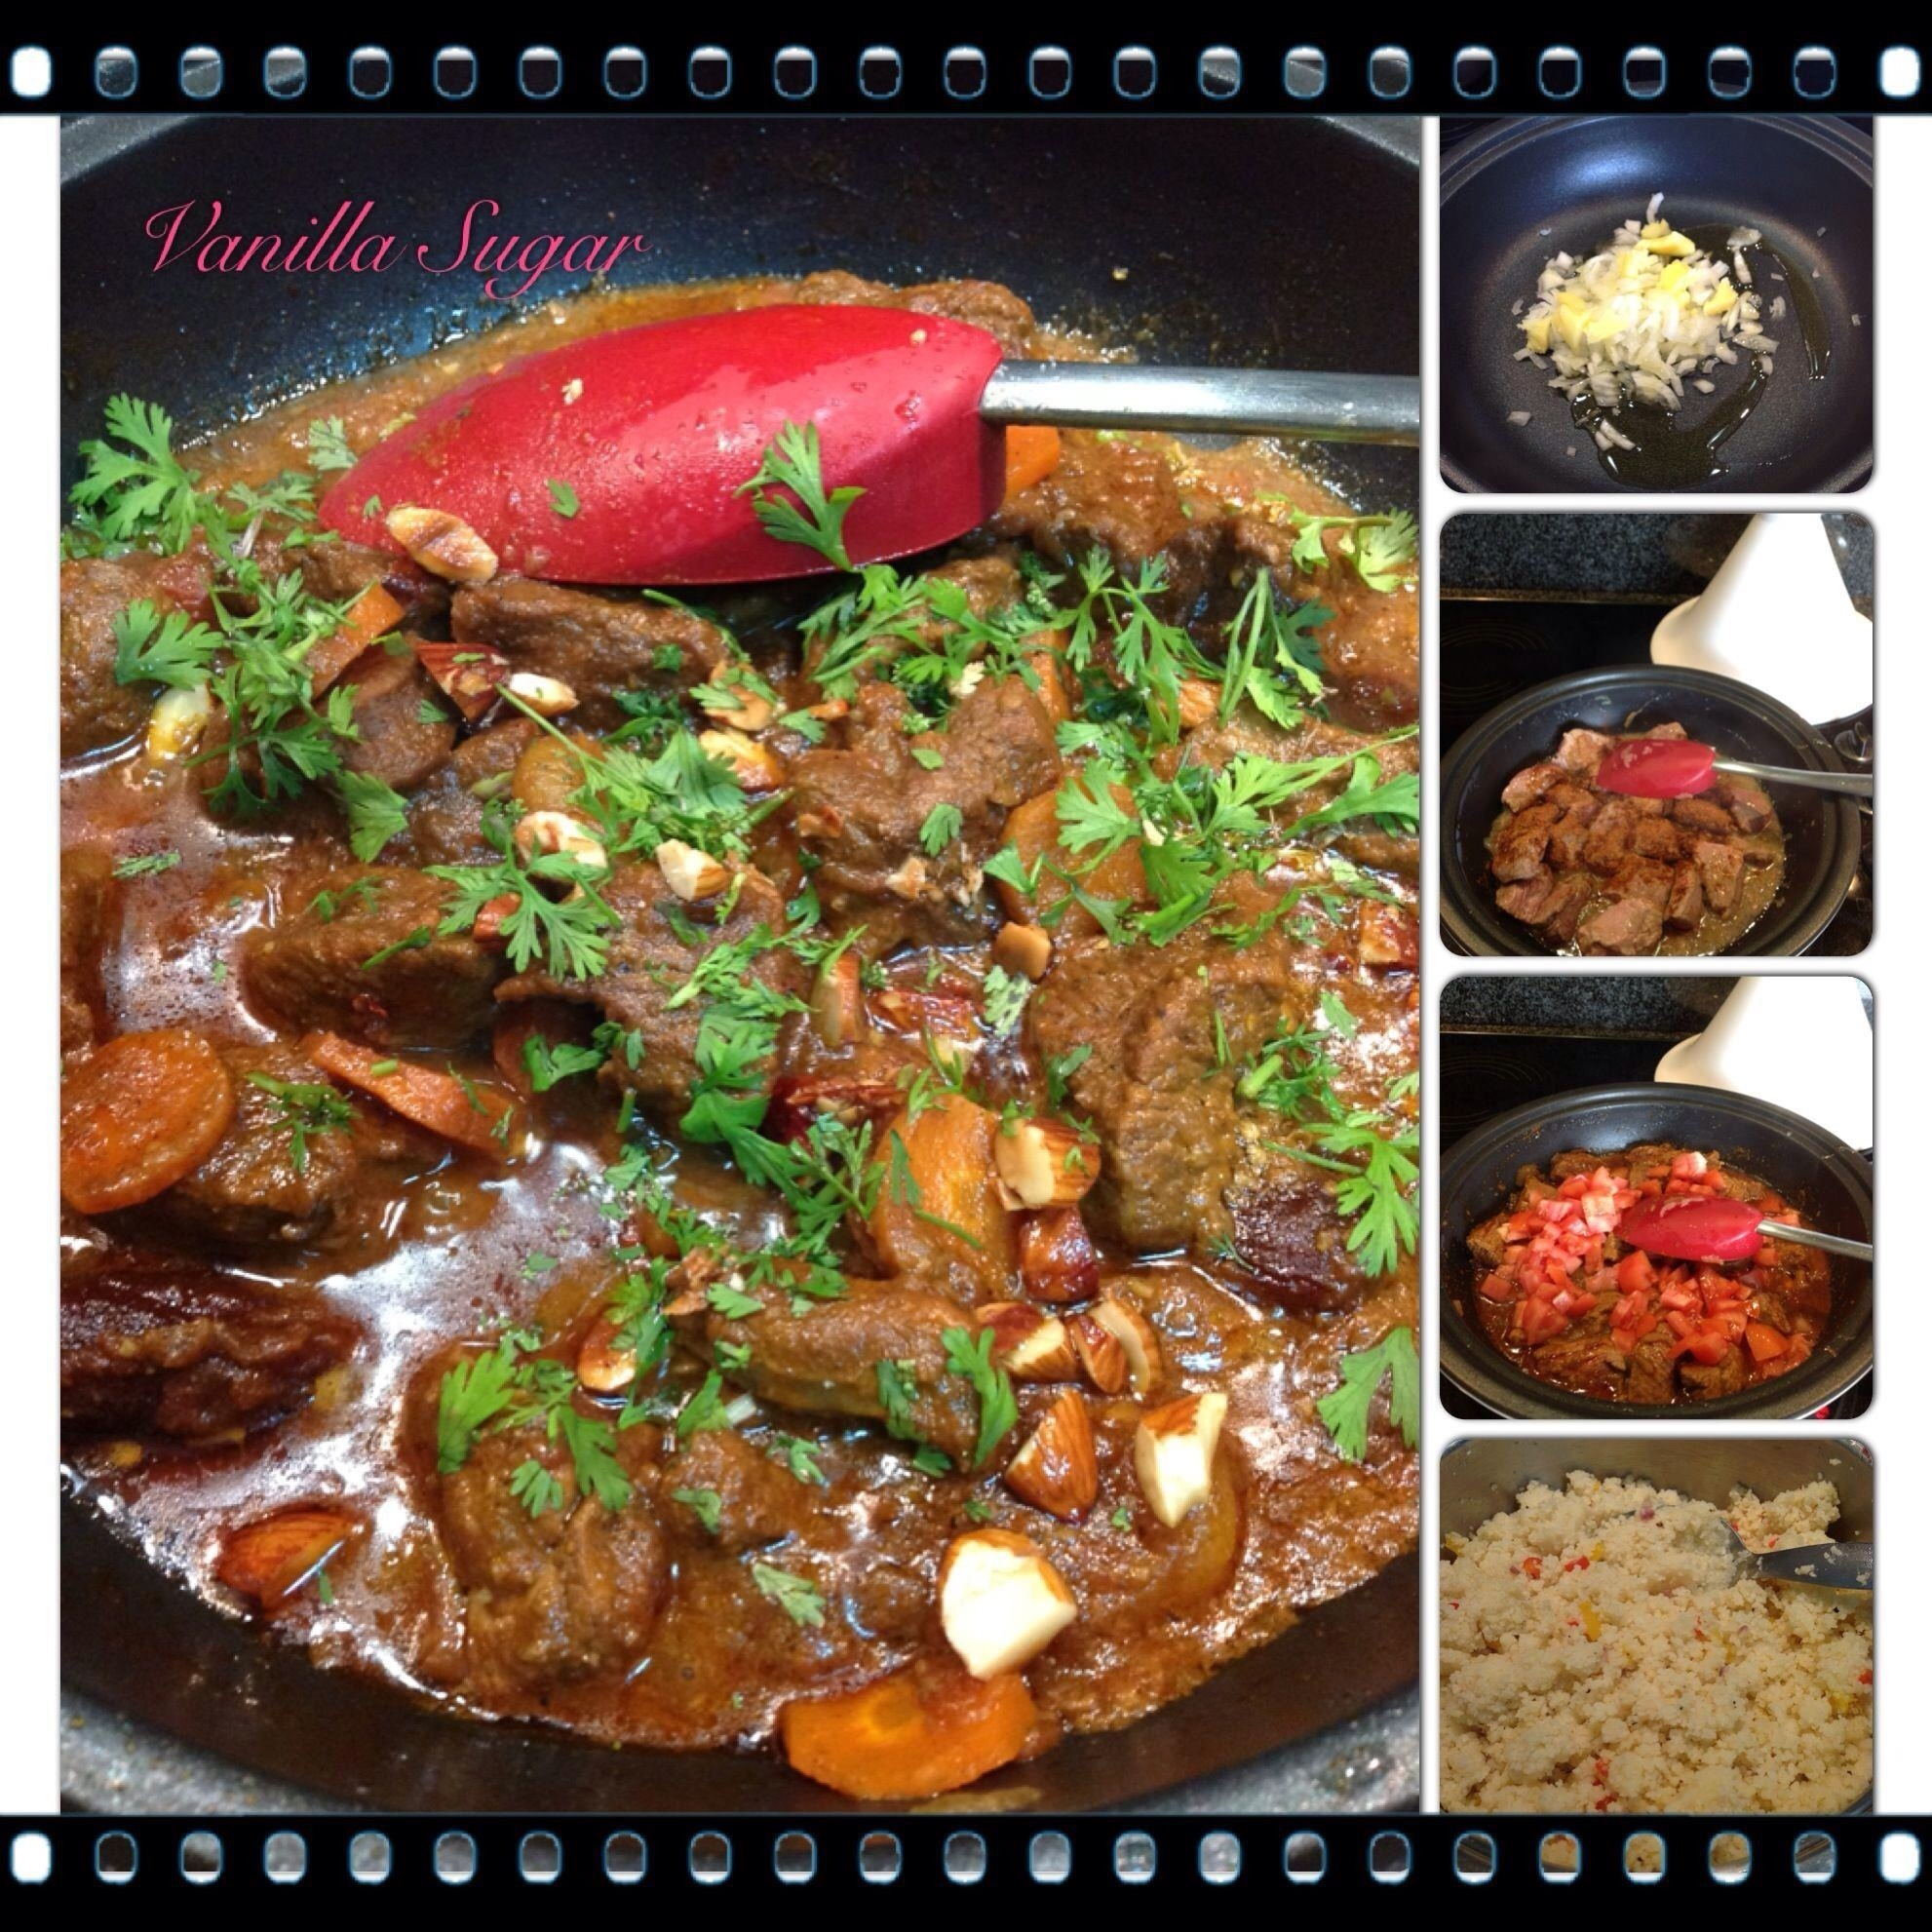 My Morrocan Lamb Tagine Recipe